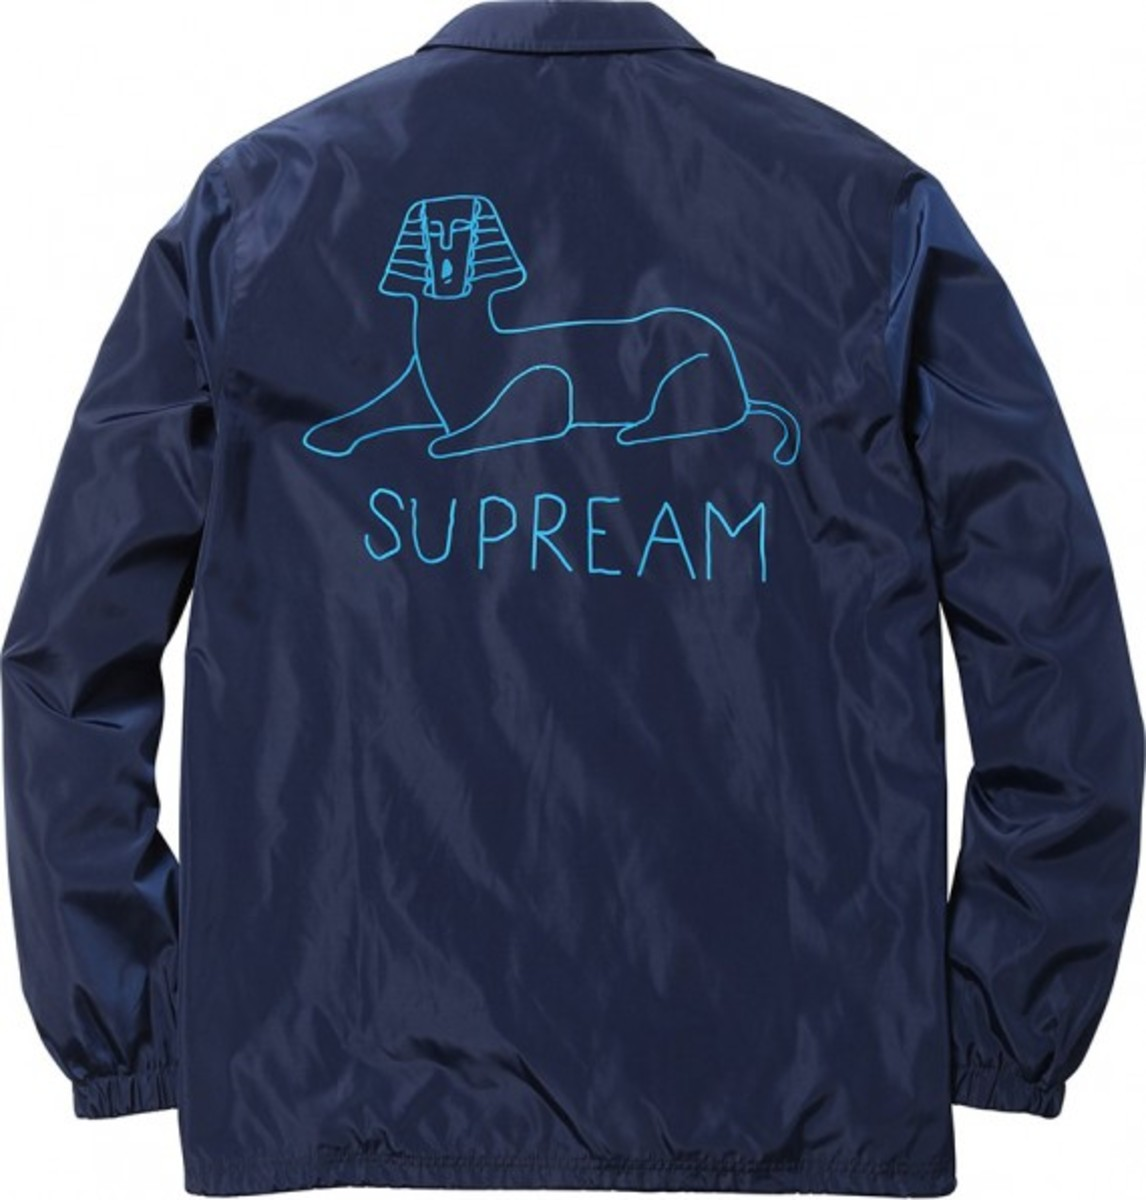 supreme-spring-summer-2013-outerwear-collection-29